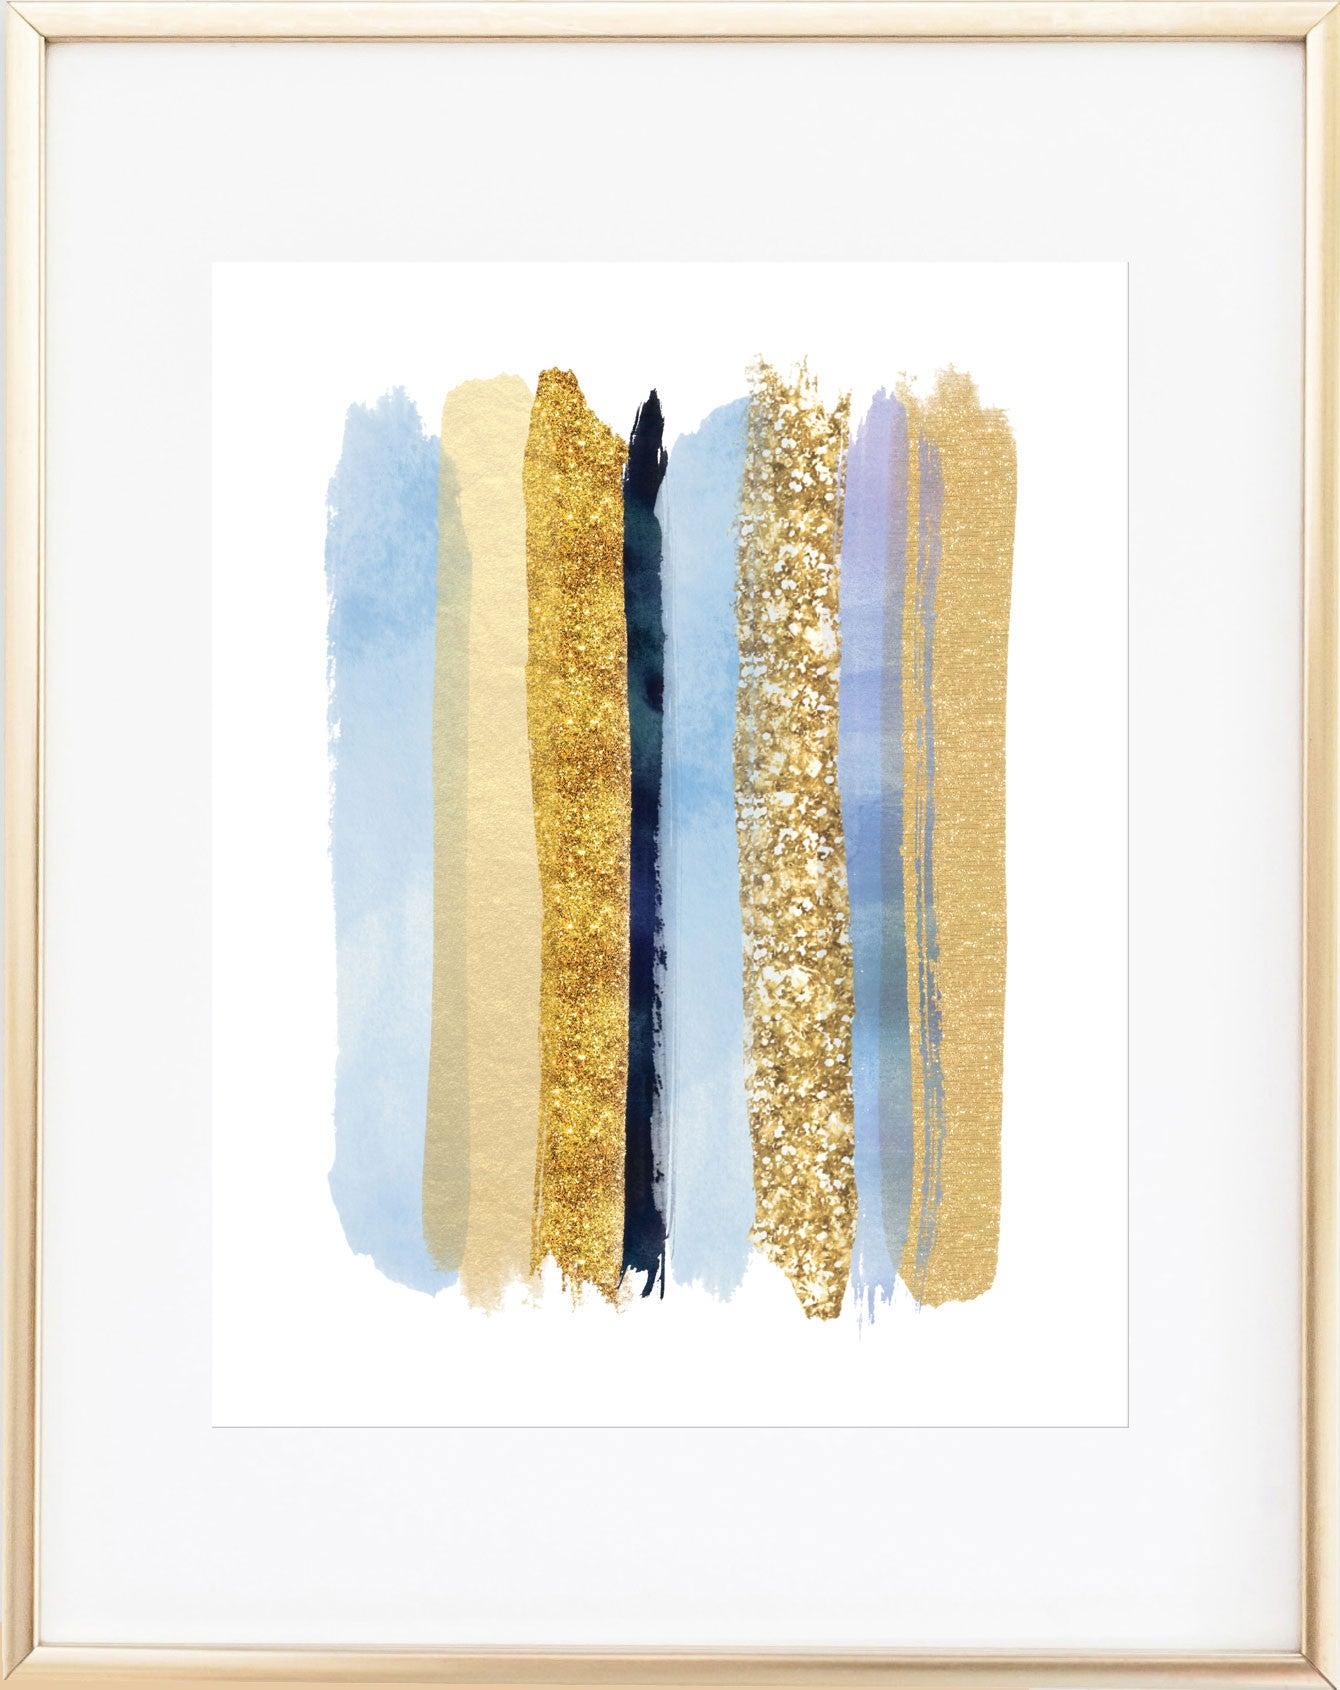 Glamorous Blue and Gold Wall Art | Mad Kitty Media